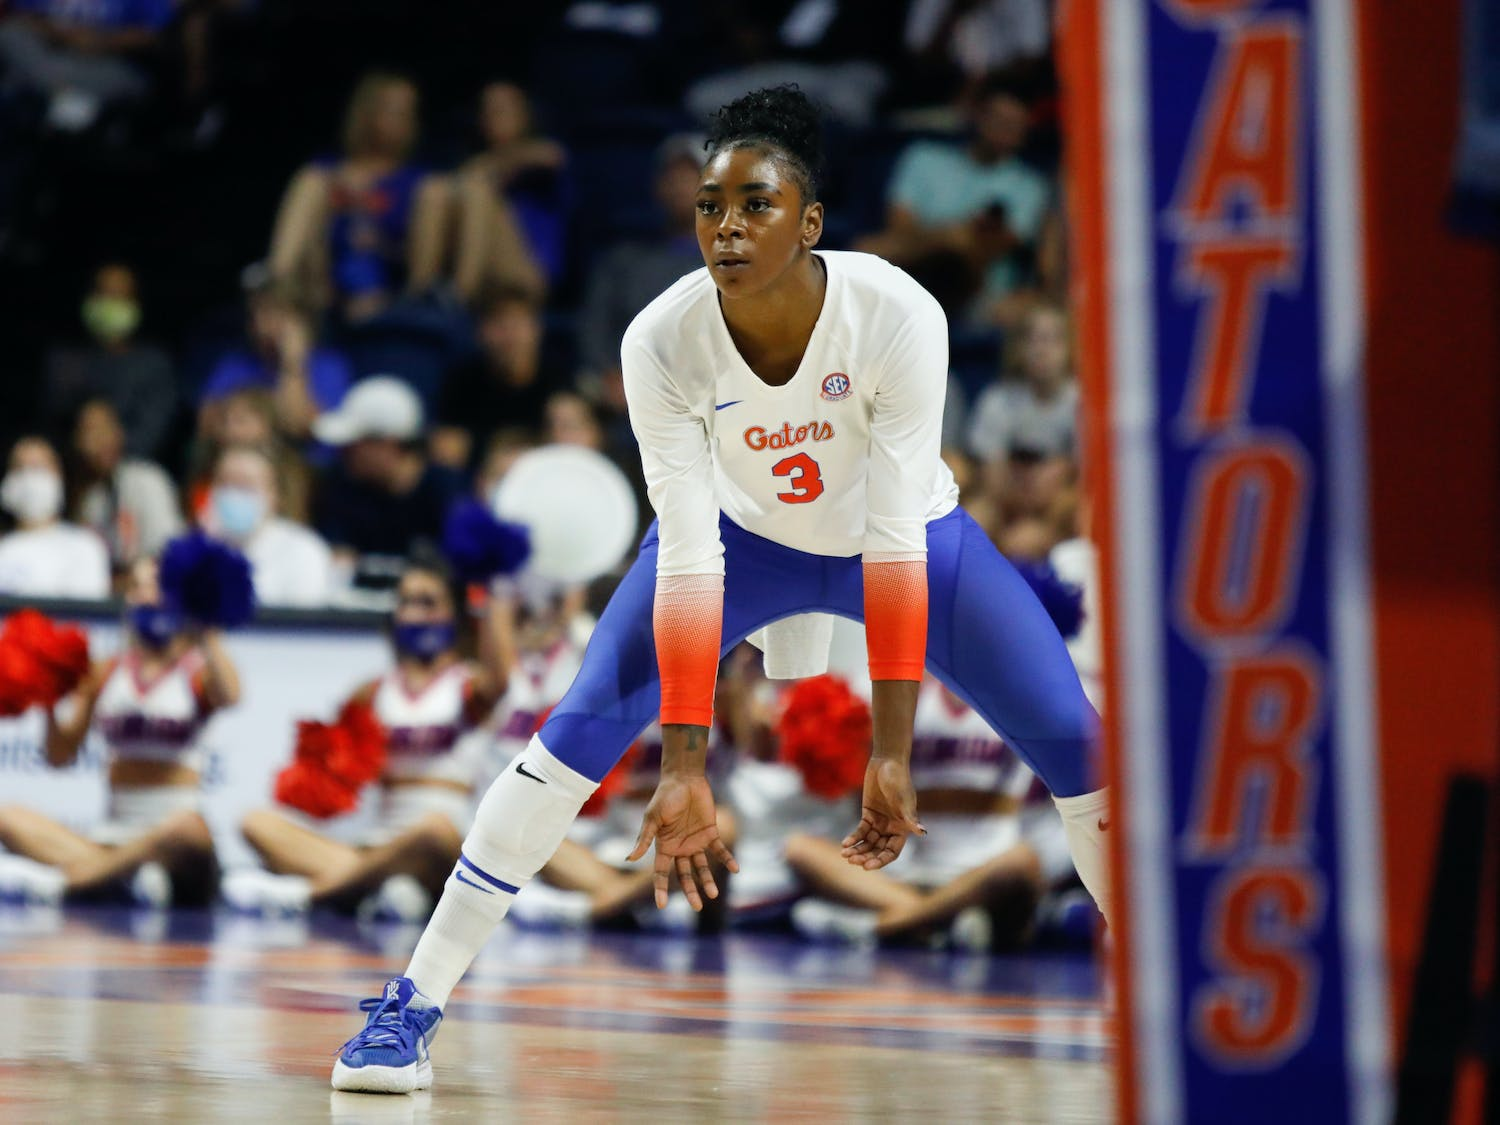 Florida's T'ara Ceasar during a game against Mississippi State on Sept. 24.